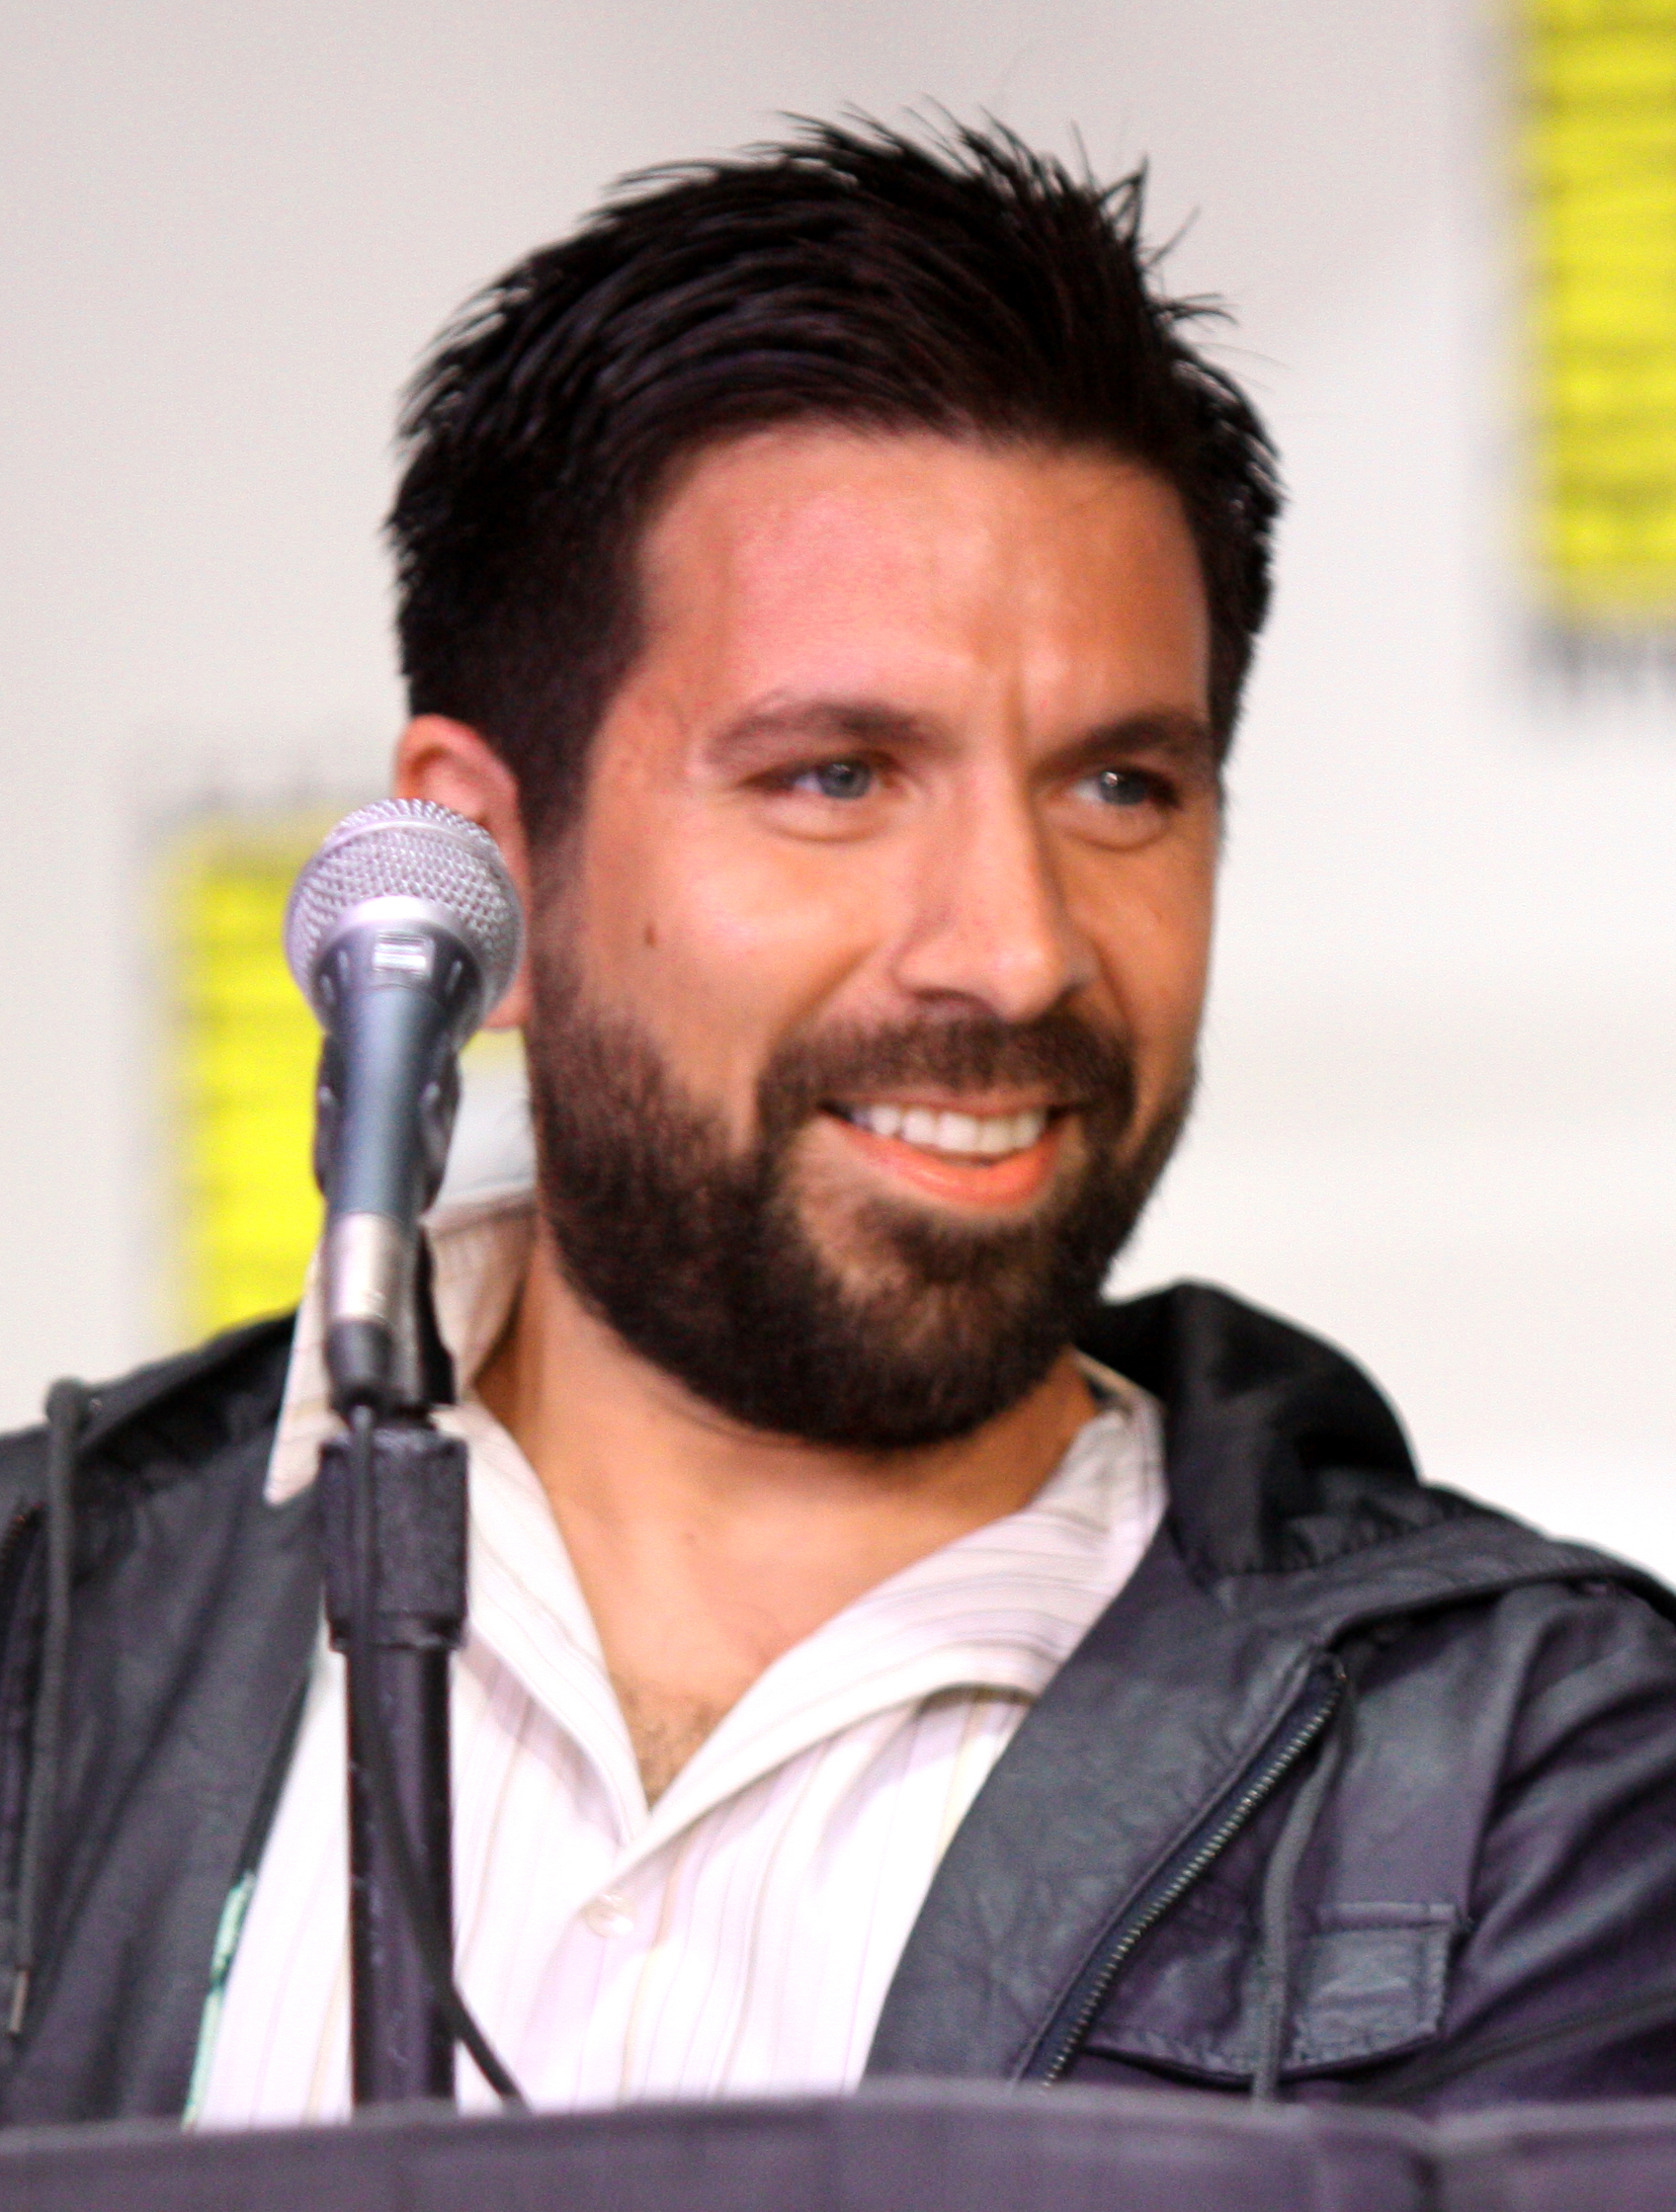 Joshua Gomez Wikipedia He is from bayonne, new jersey. joshua gomez wikipedia